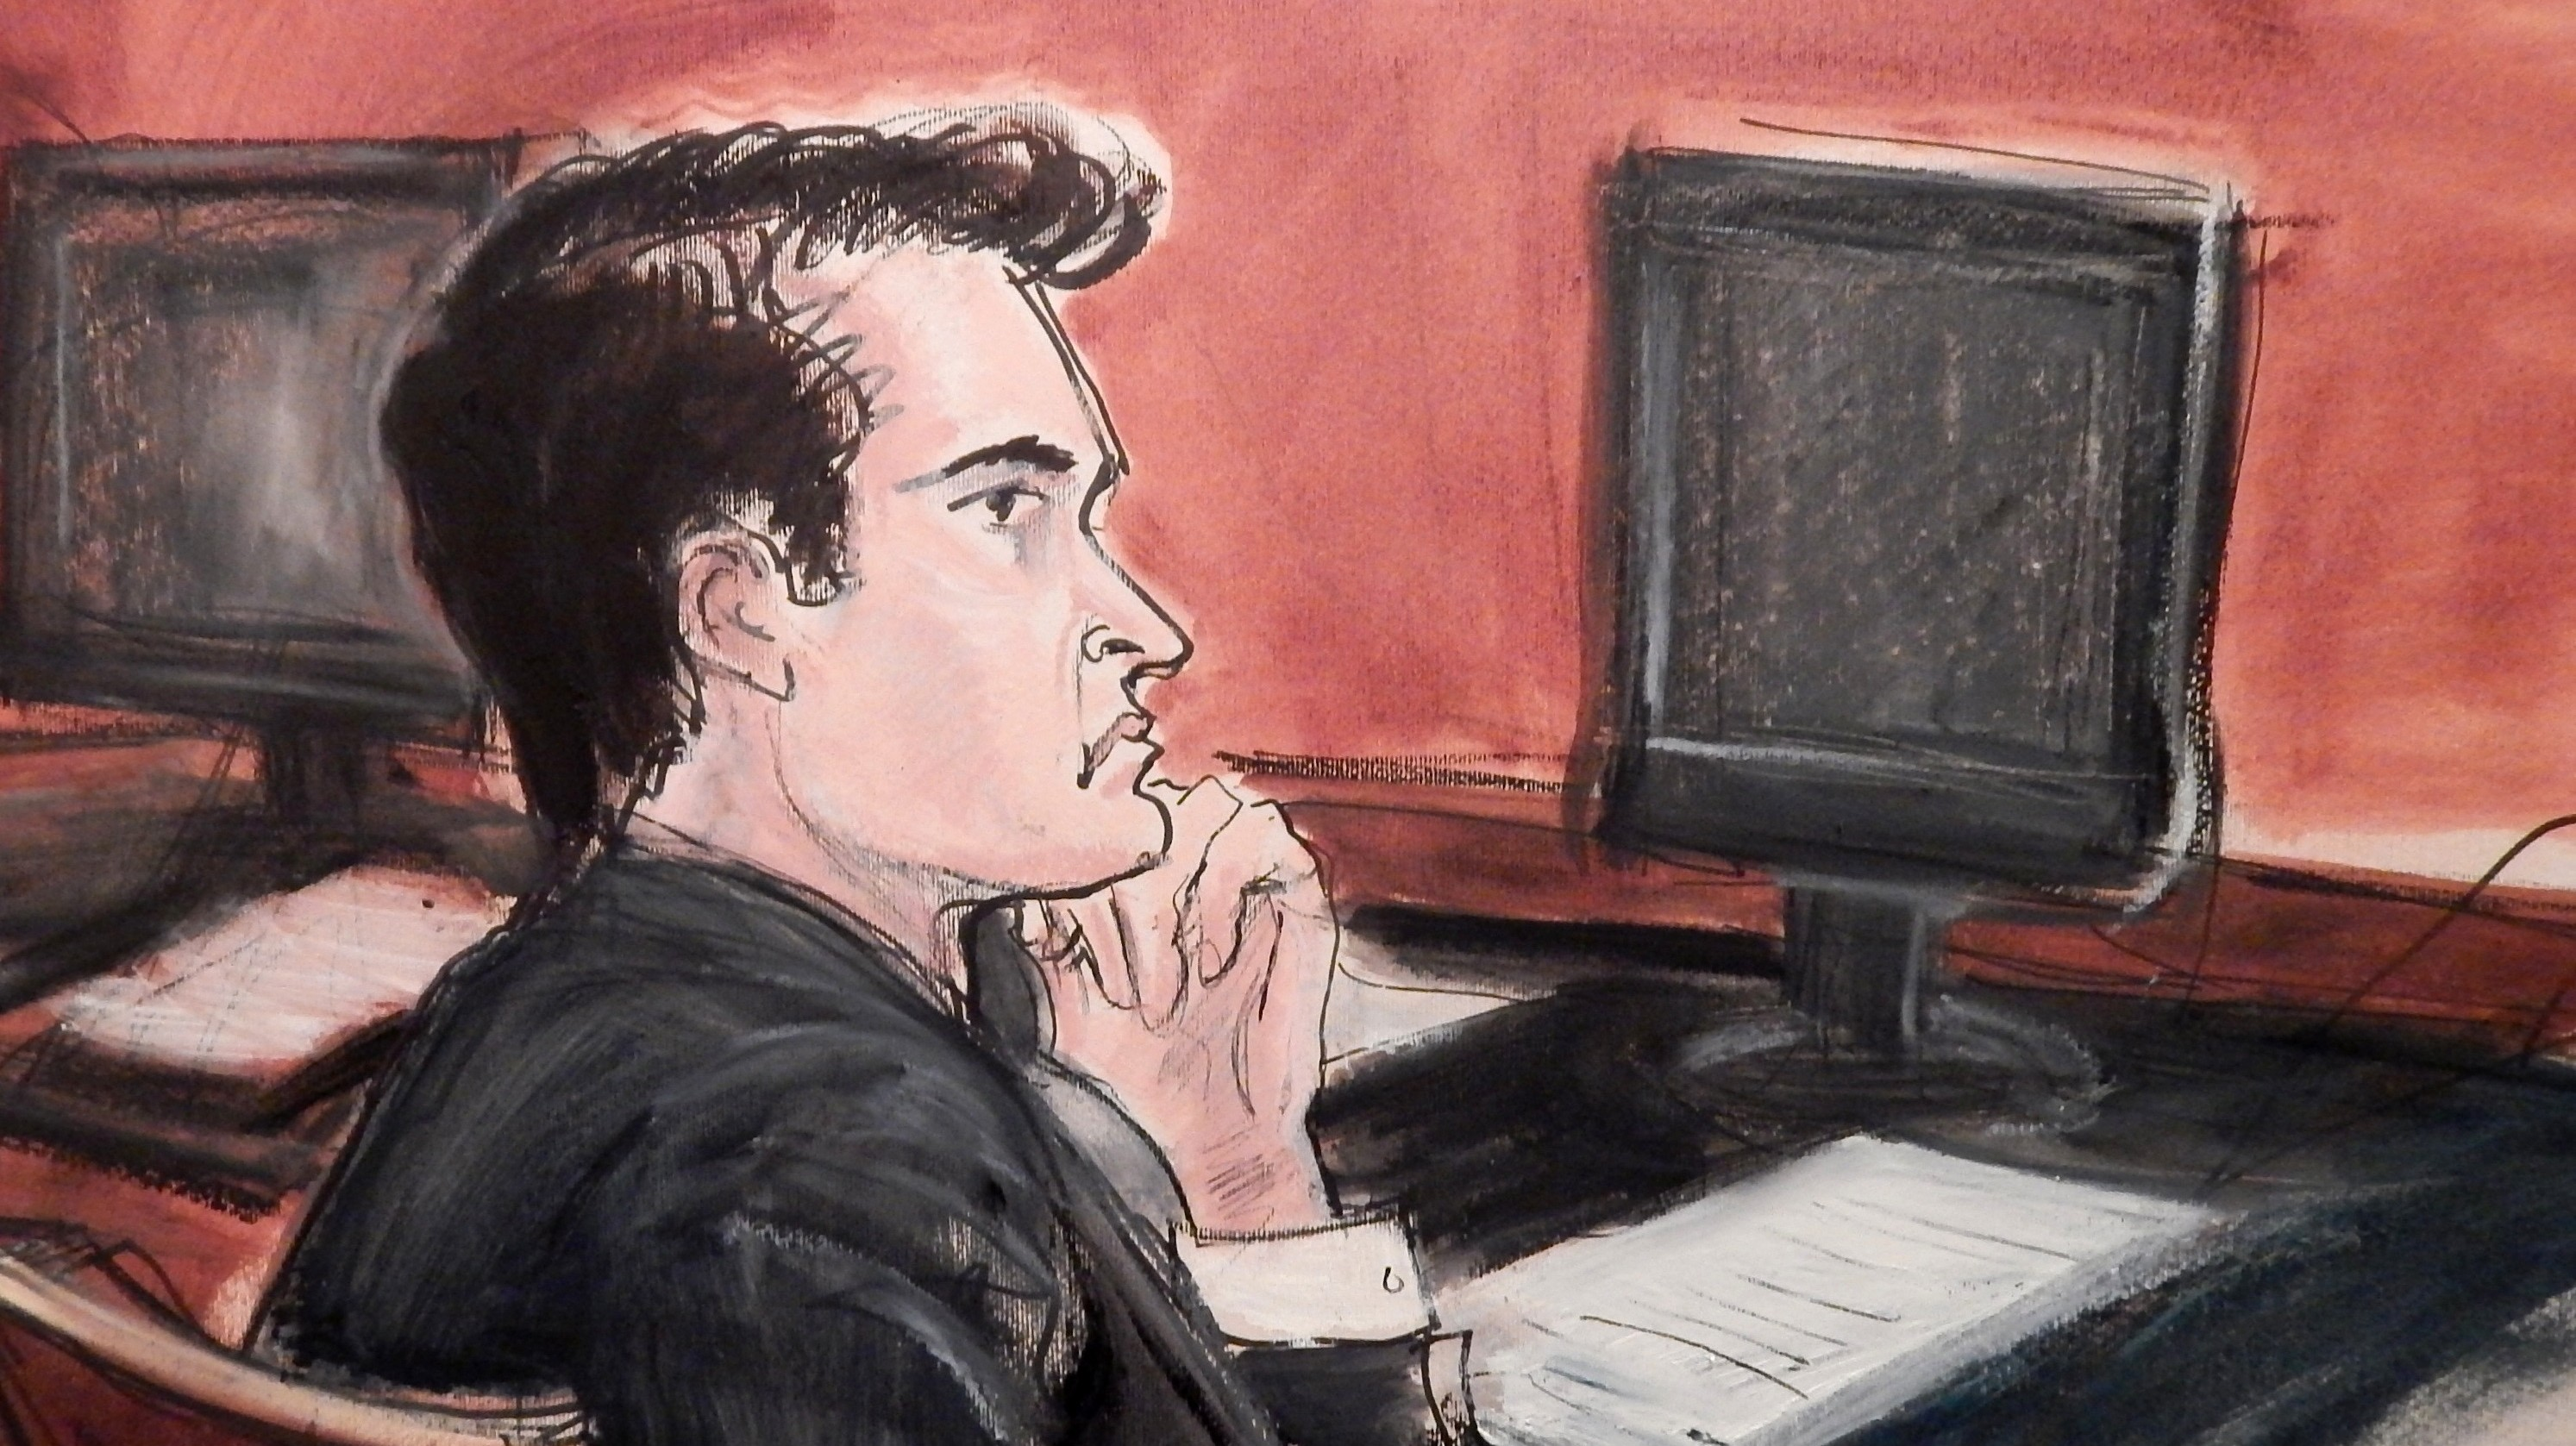 Jury Takes Less Than Four Hours to Convict Ross Ulbricht of Running Silk Road